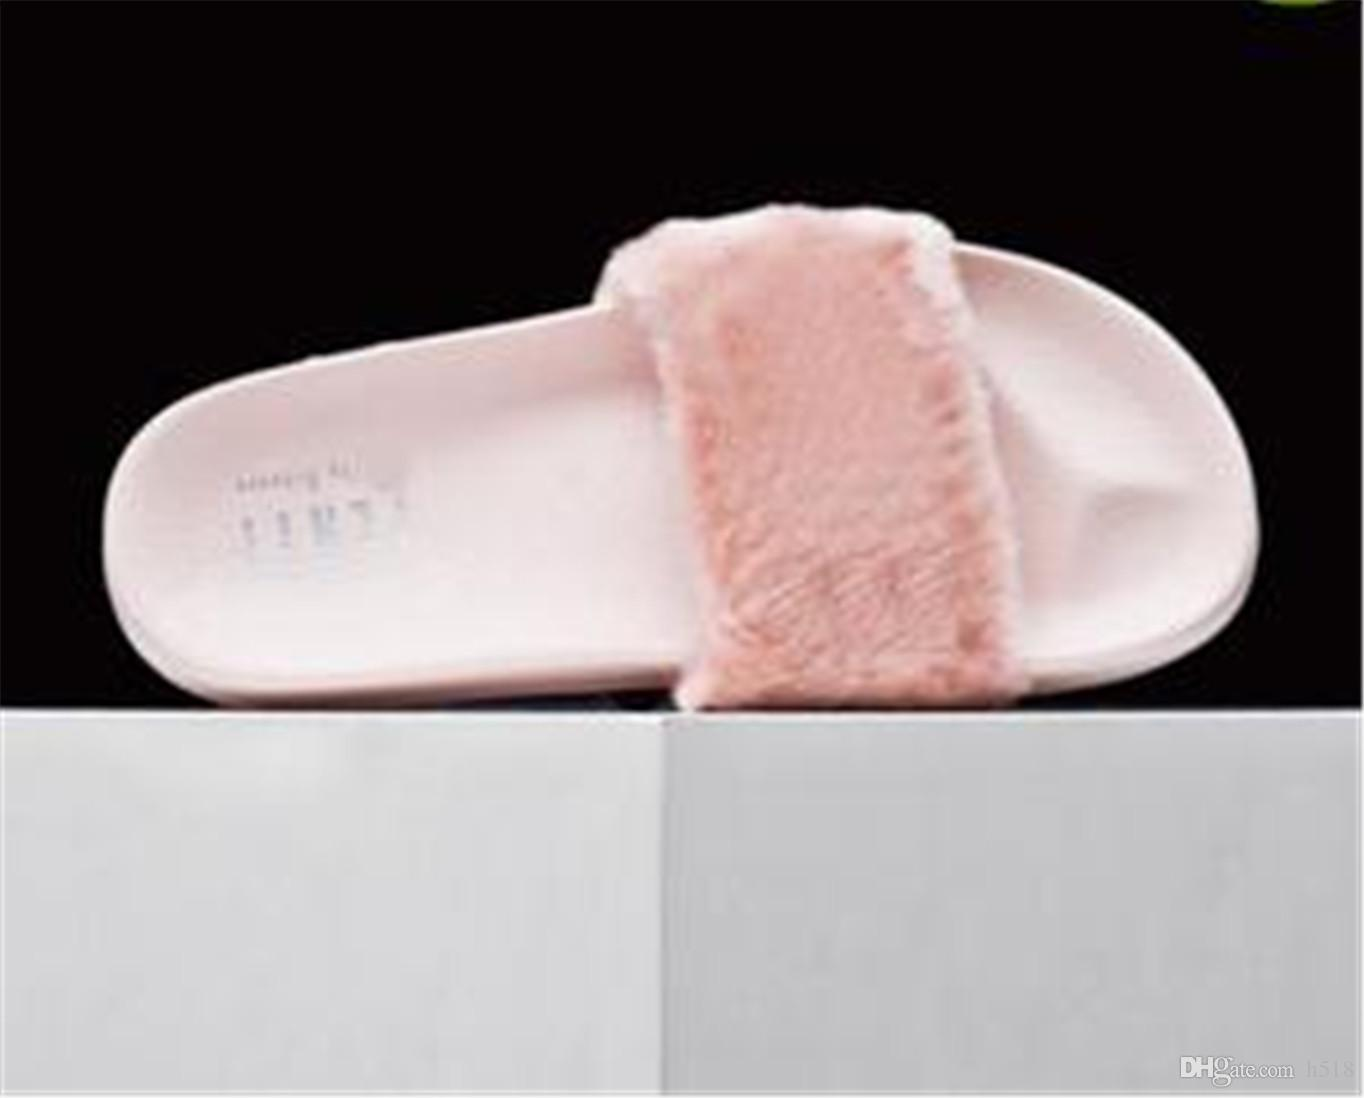 49c8dbb3c2dd Dust Bags+ Box Leadcat Fenty Rihanna Shoes Women Slippers Indoor Sandals  Girls Fashion Scuffs Pink Black White Grey Fur Slides Slippers Loafers For  Women ...